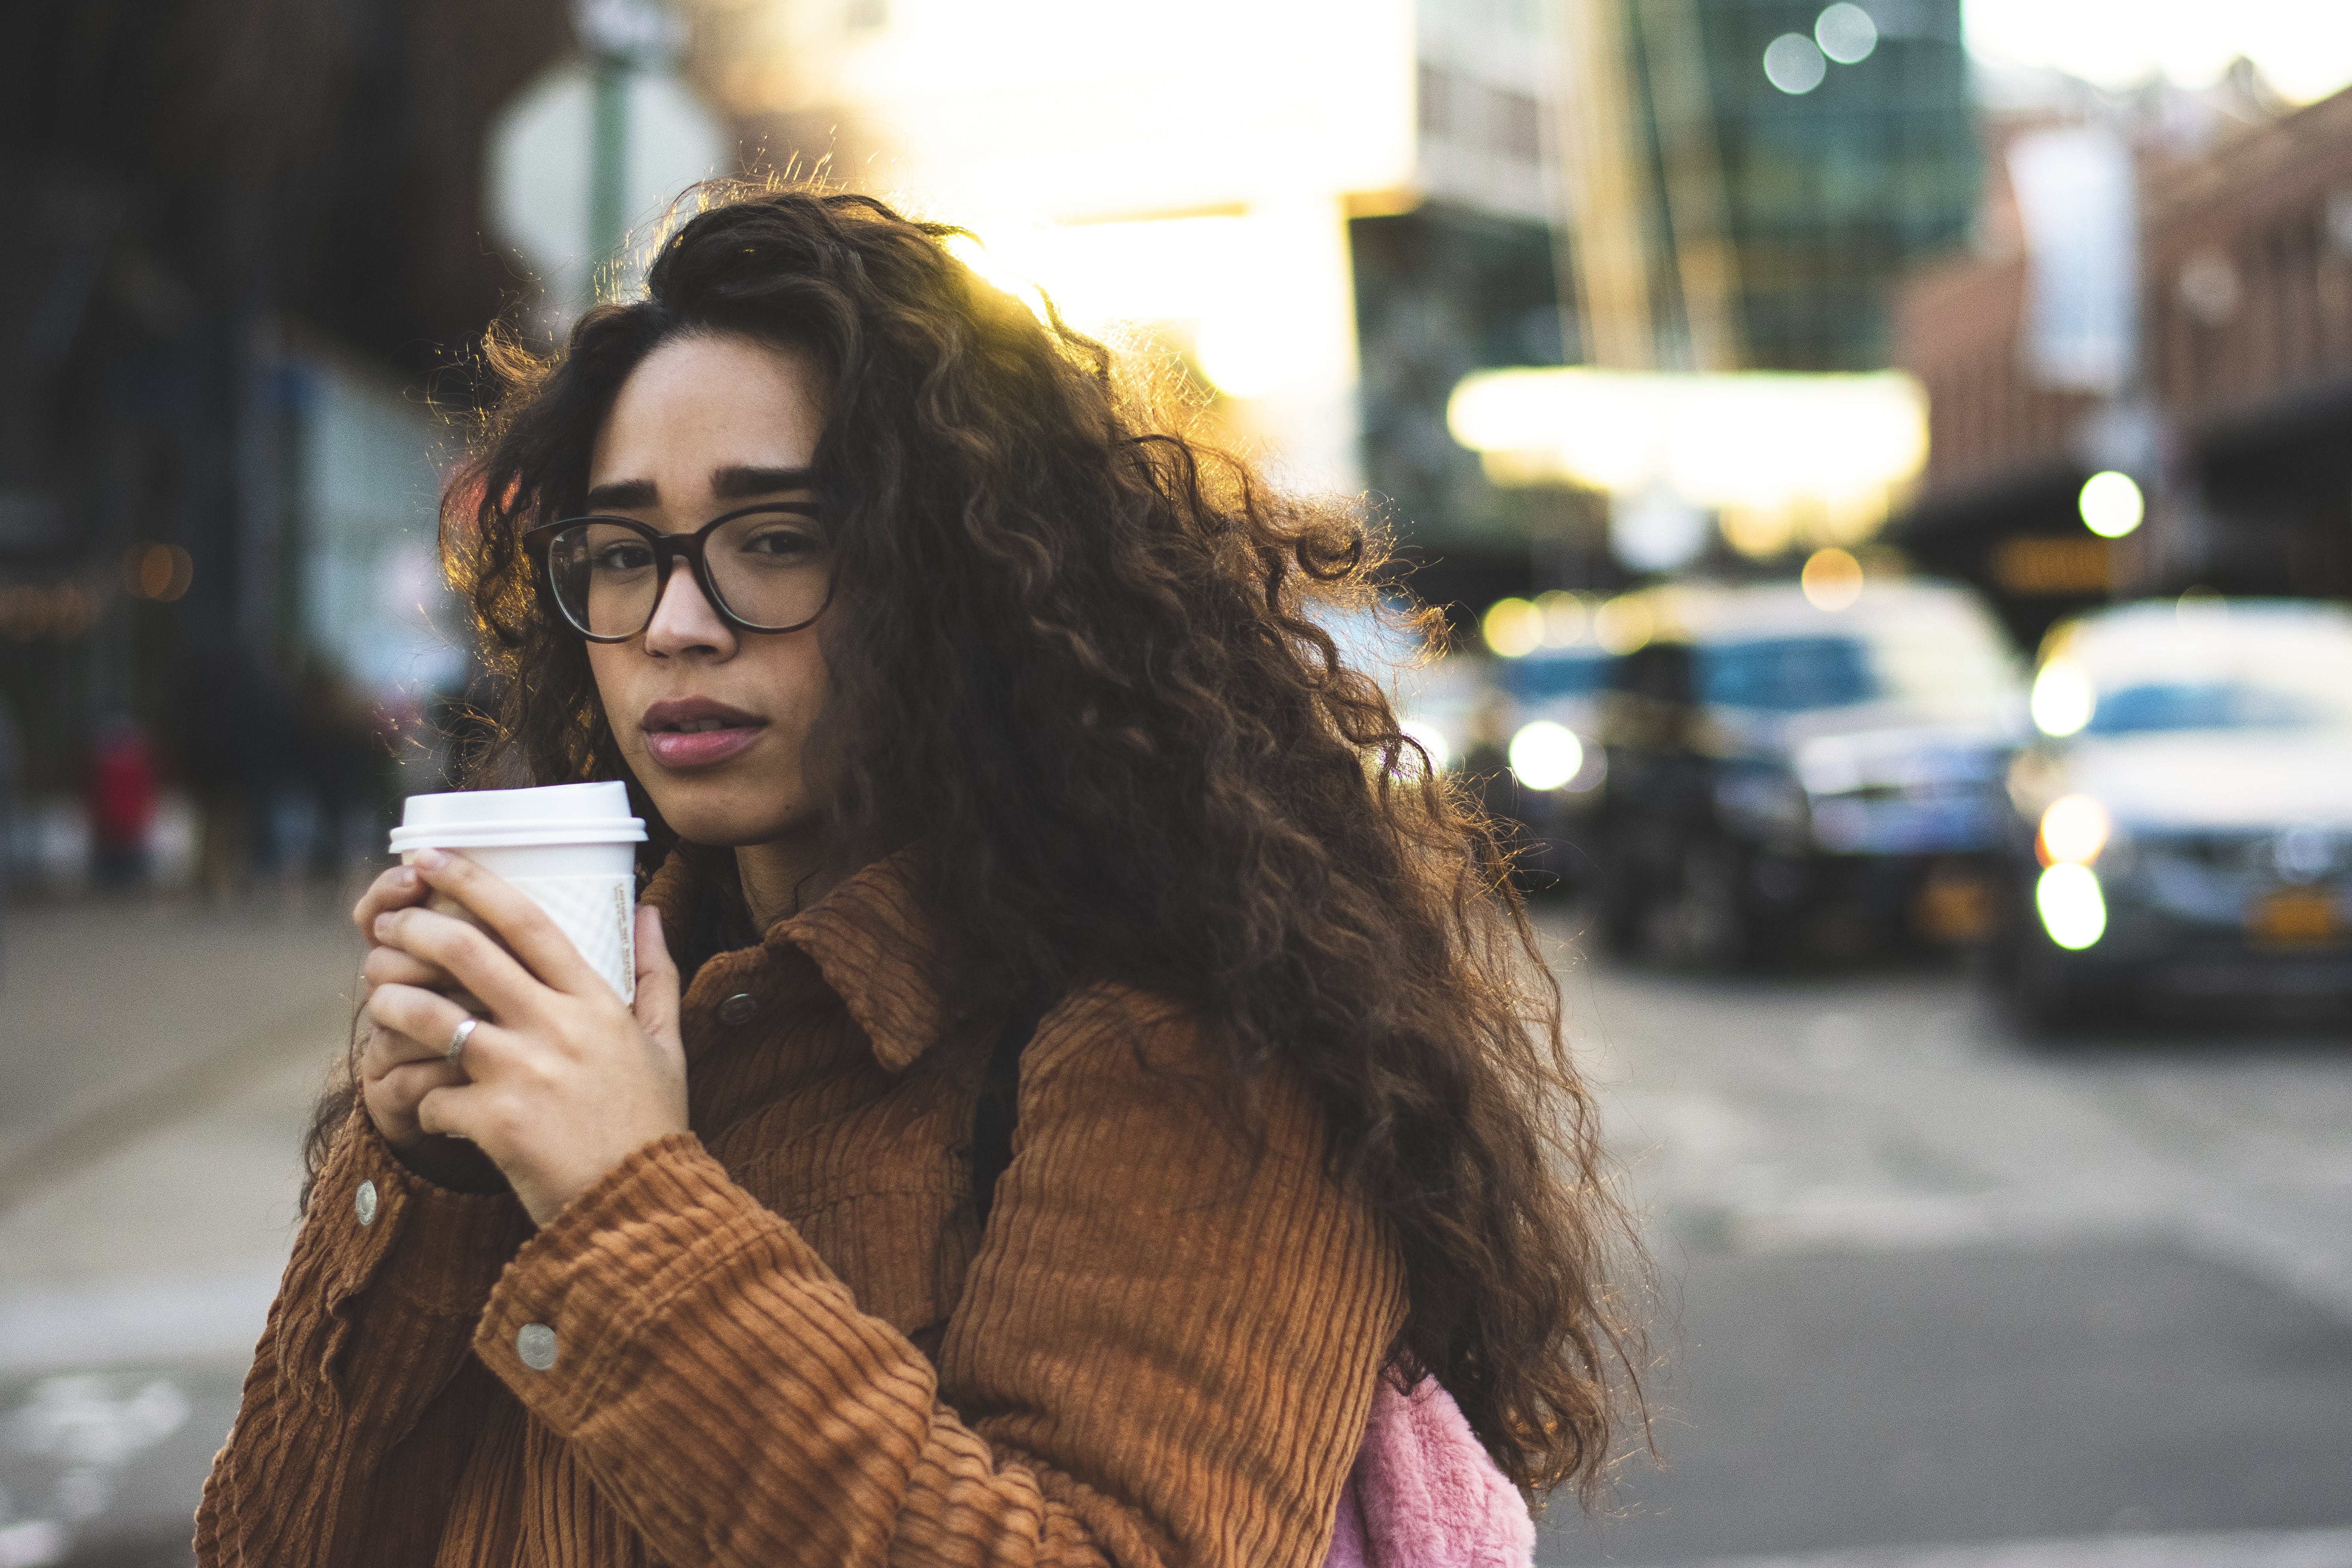 Selective Focus Photography of Woman Holding Disposable Cup